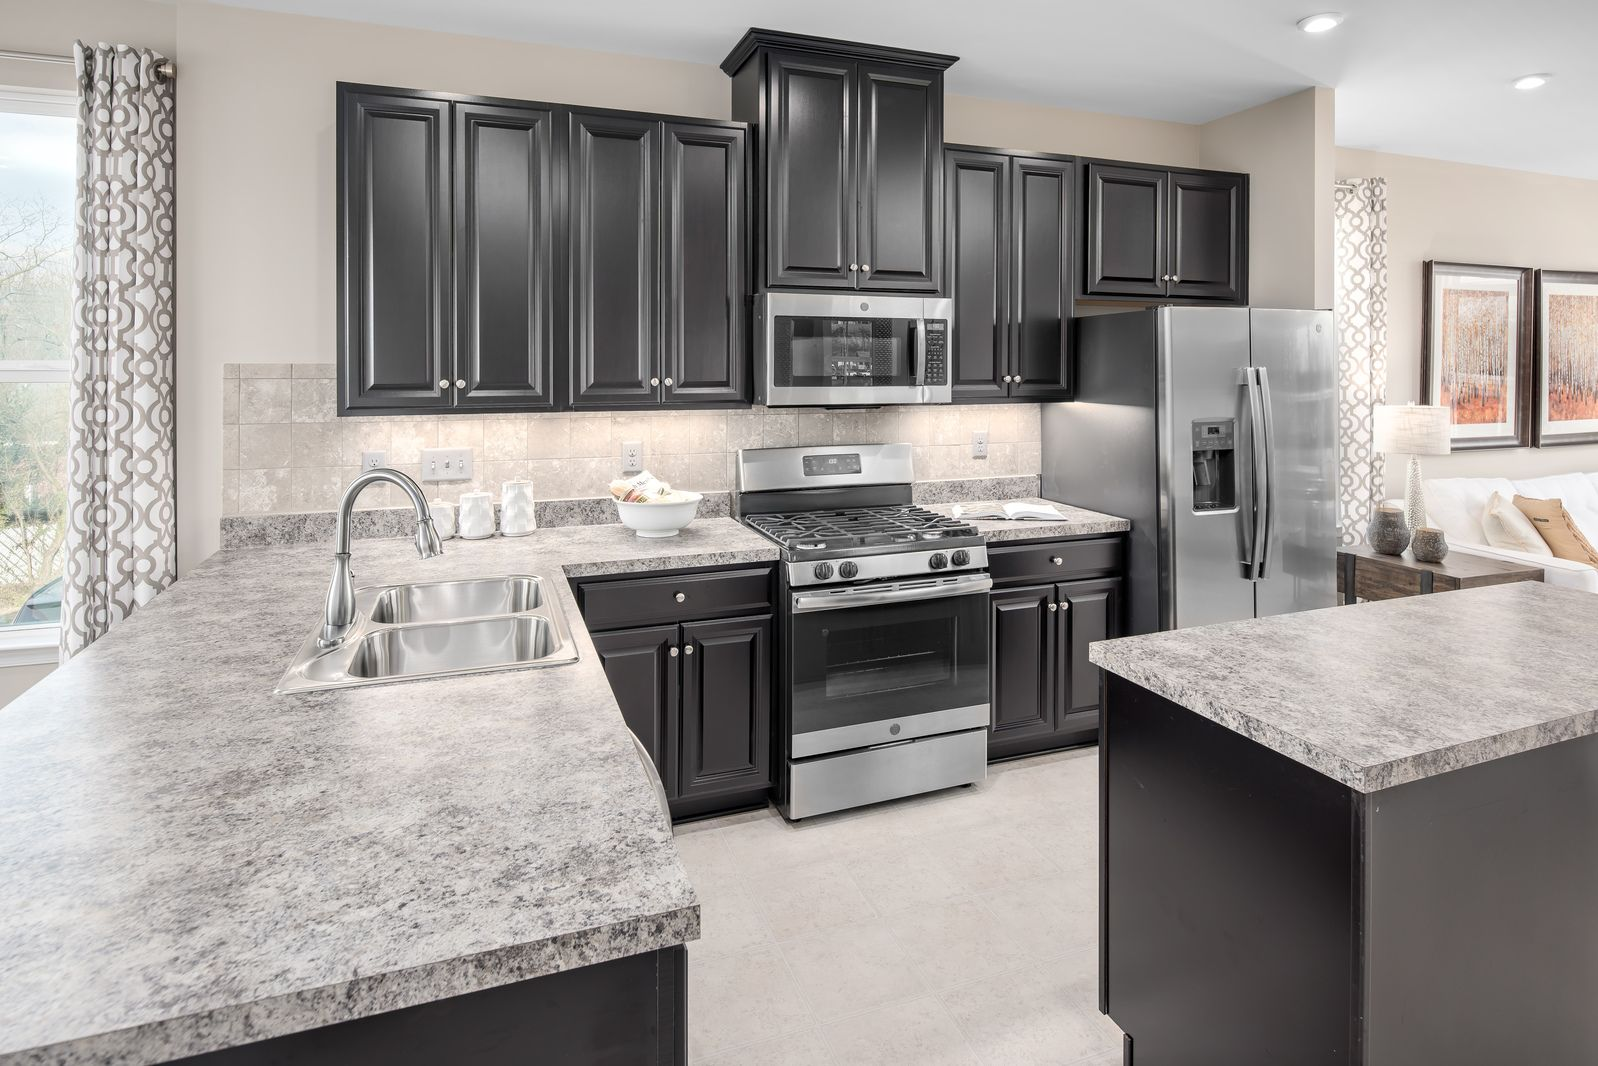 BEST PRICED NEW TOWNHOMES IN HOWARD COUNTY:Welcome to Lennox Park, Join Our VIP List Now! From the mid $300s.